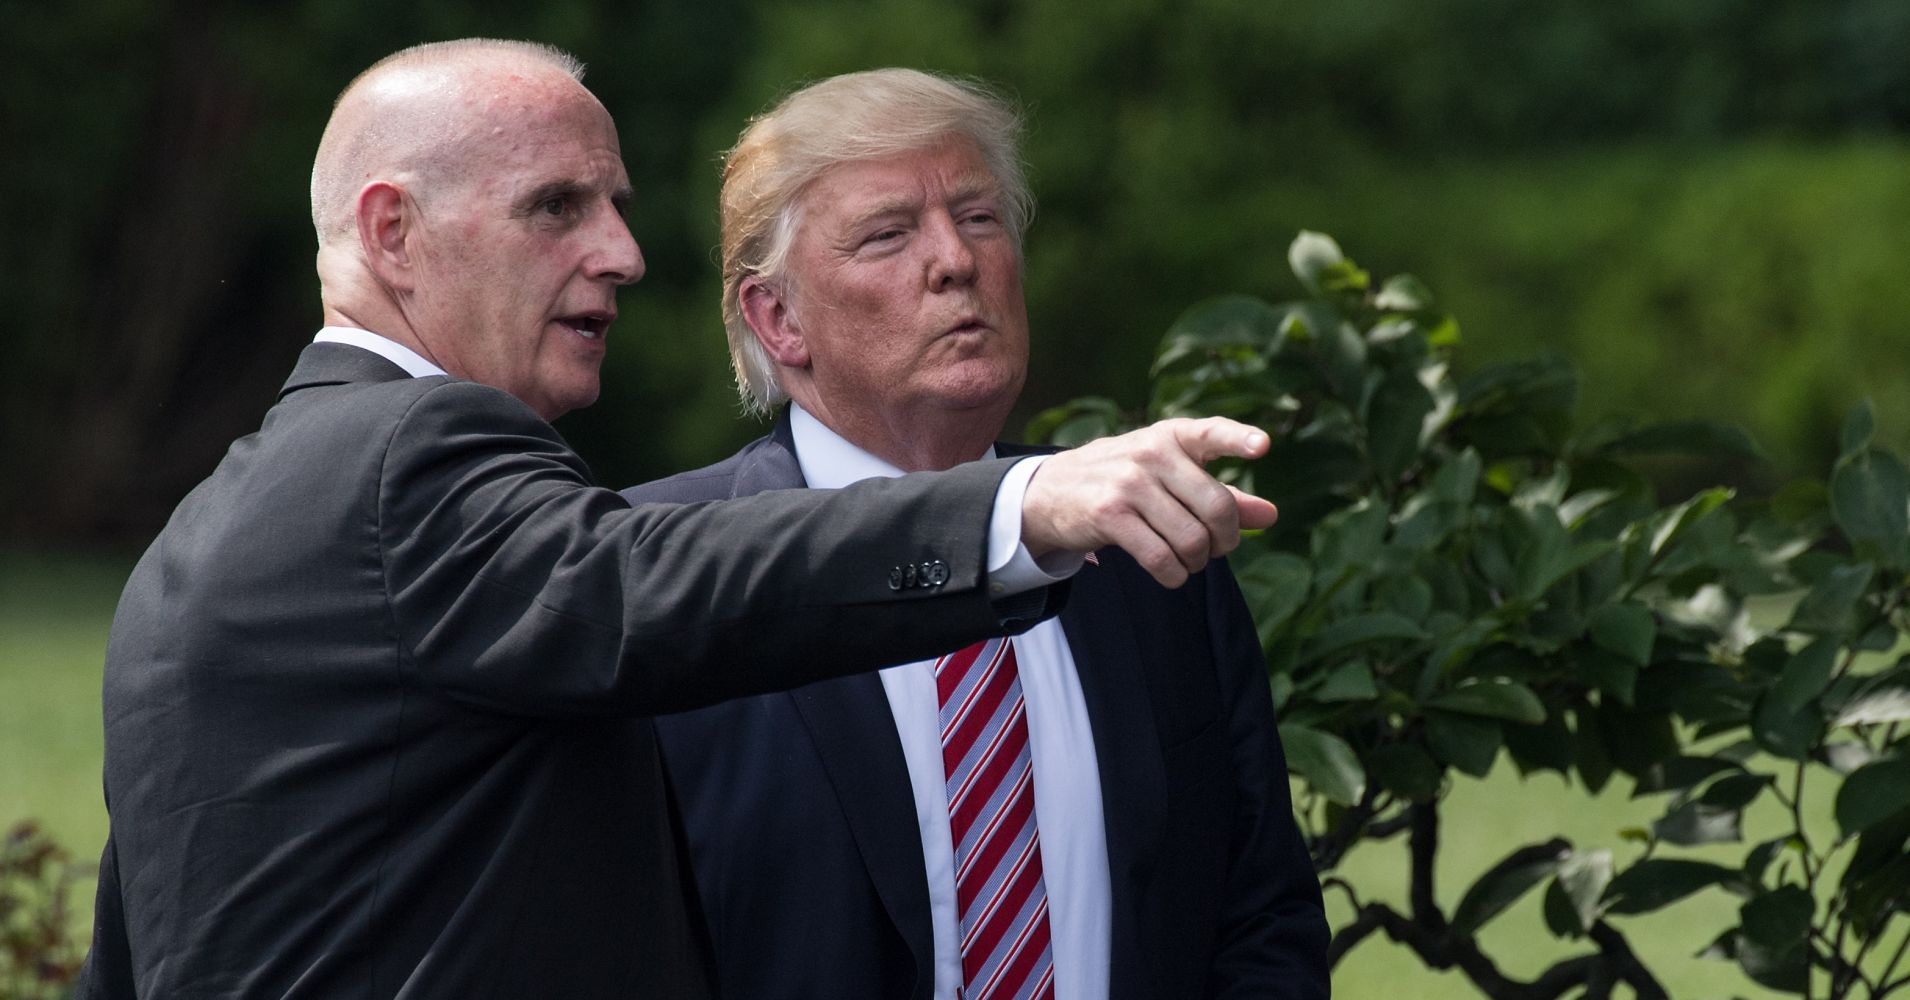 Firm owned by Trump's longtime bodyguard Keith Schiller has received $225,000 from the RNC